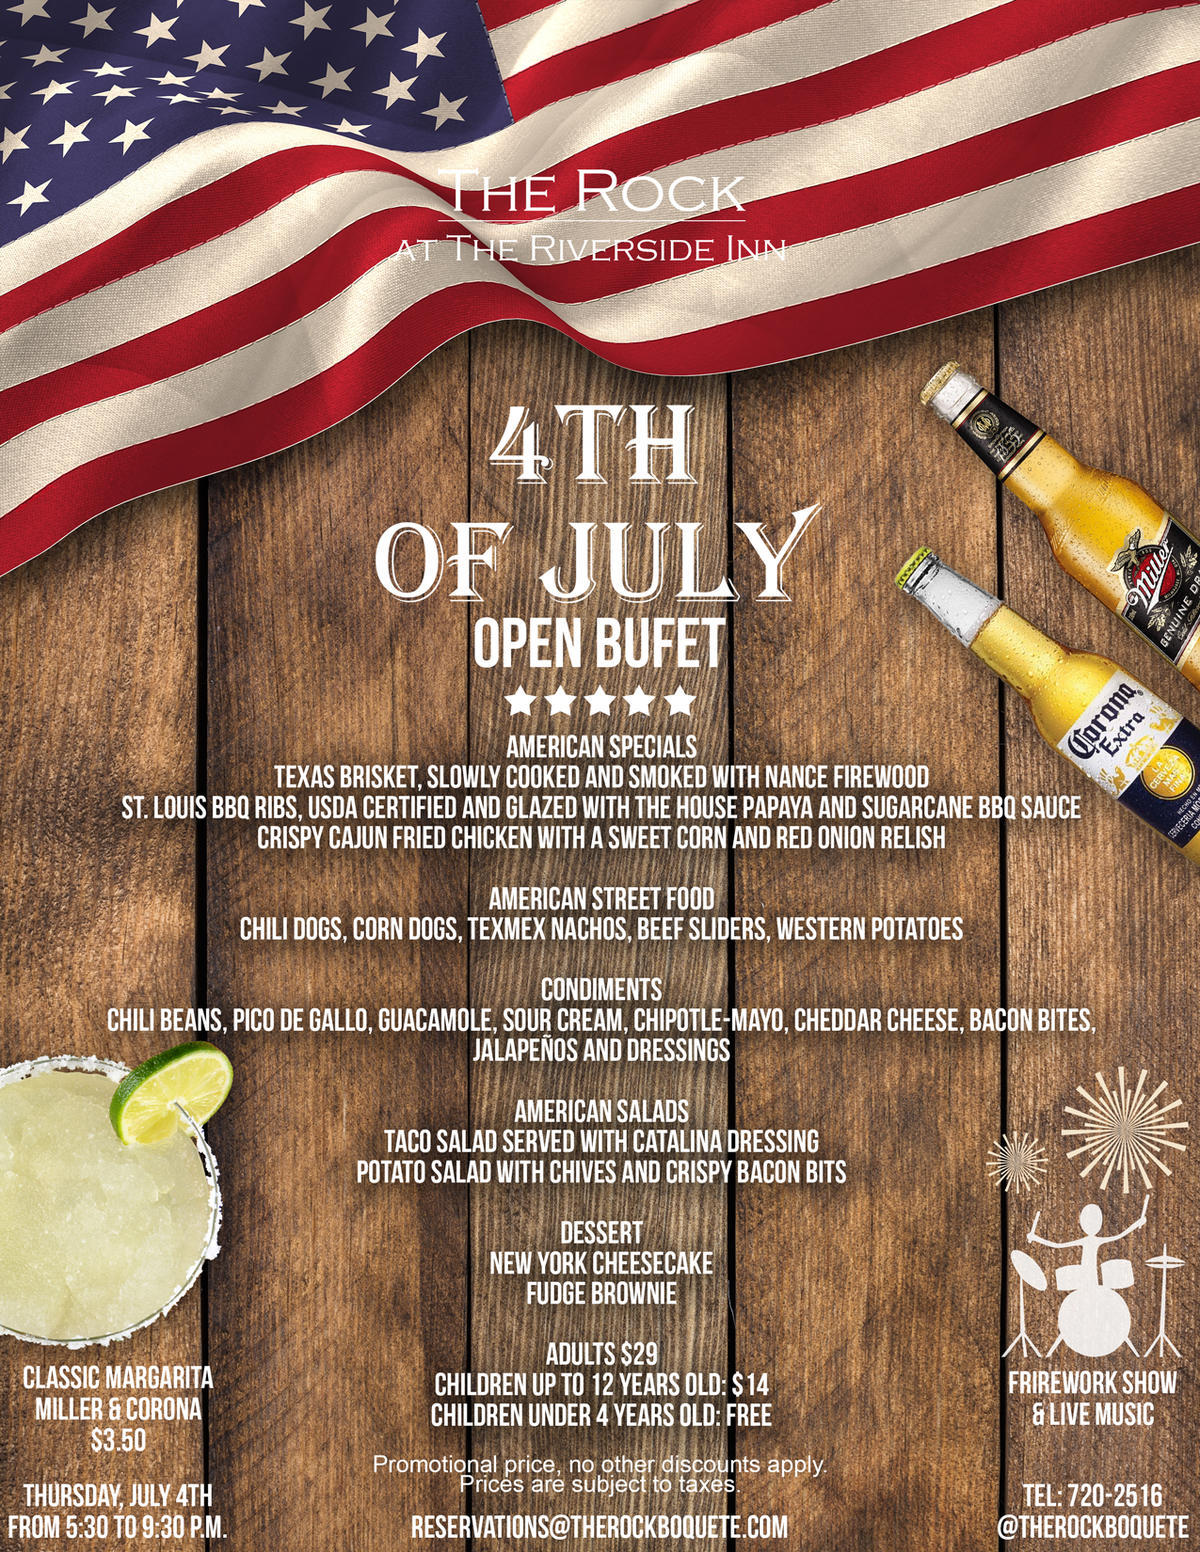 The Rock 4th of July Open Buffet - Community Events Calendar